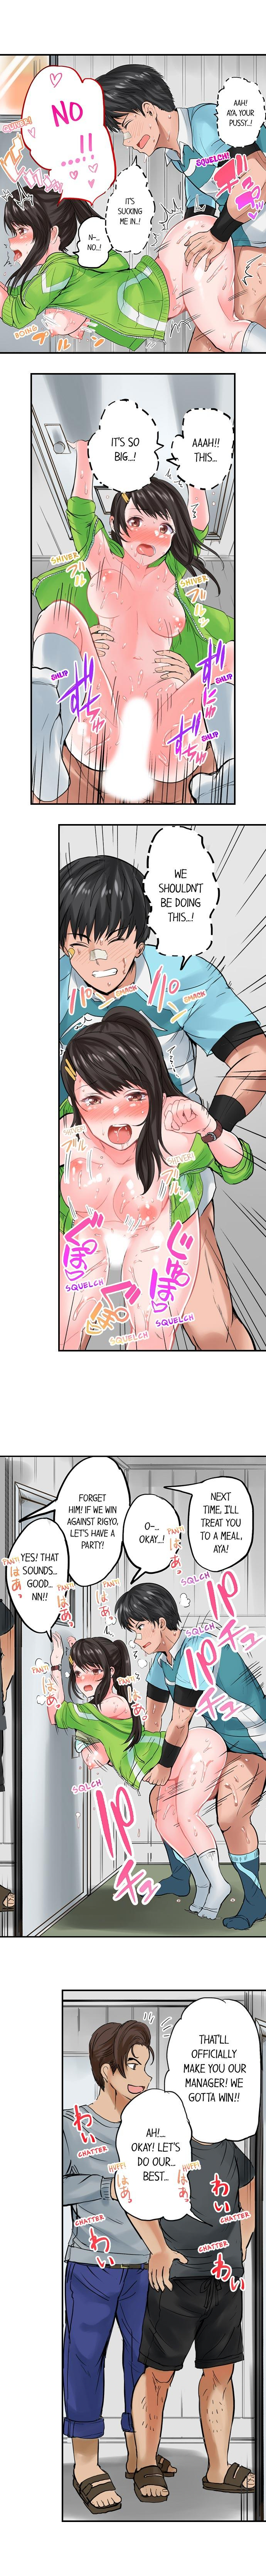 Dick Me Up Inside Ch. 1-16 78